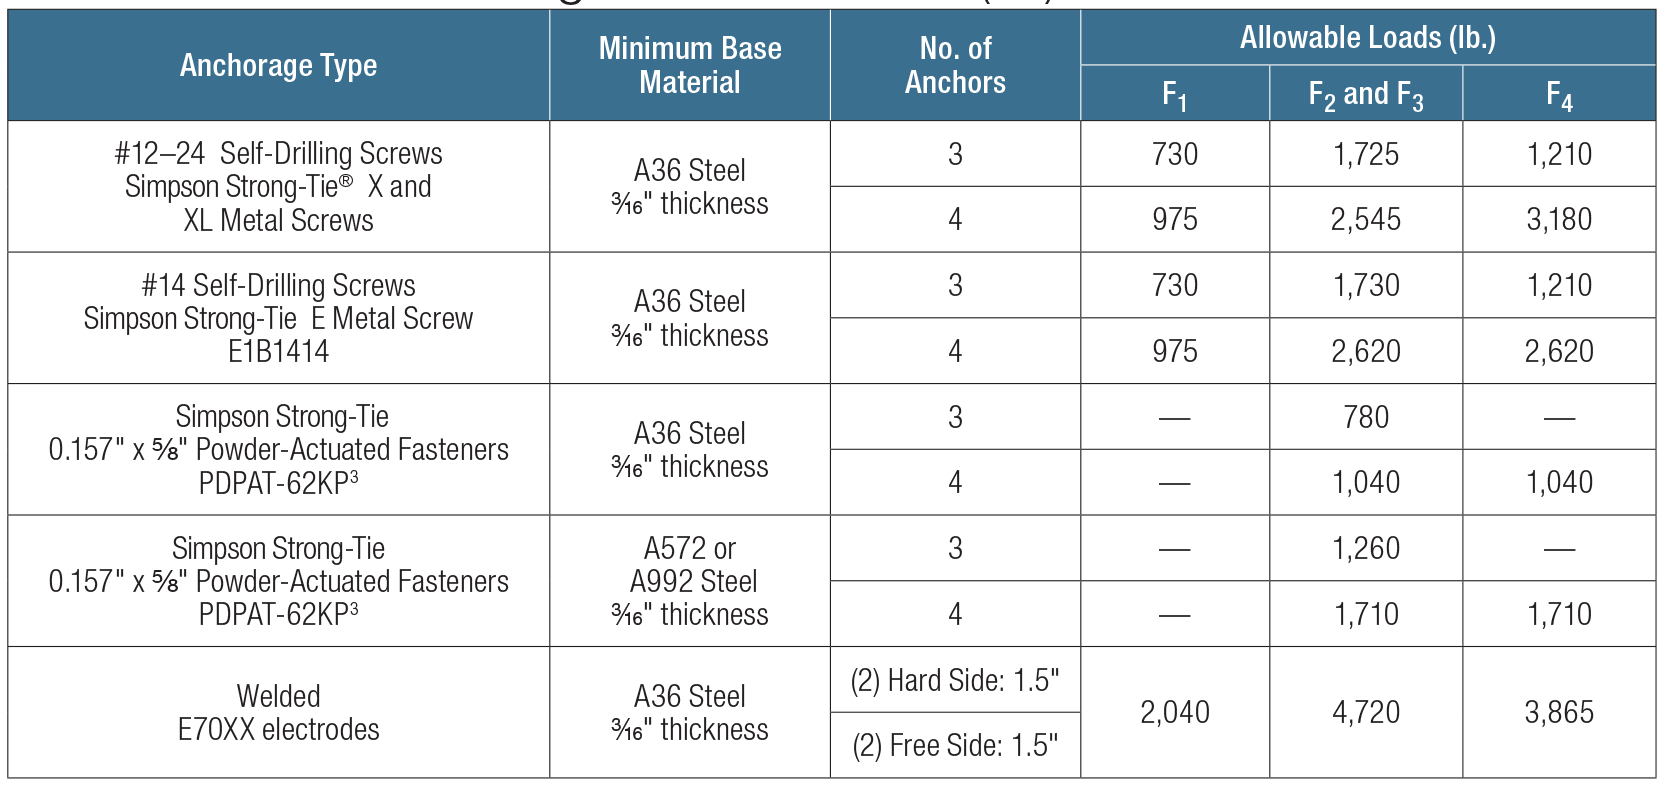 Load Table - SCS Allowable Anchorage Loads to Steel